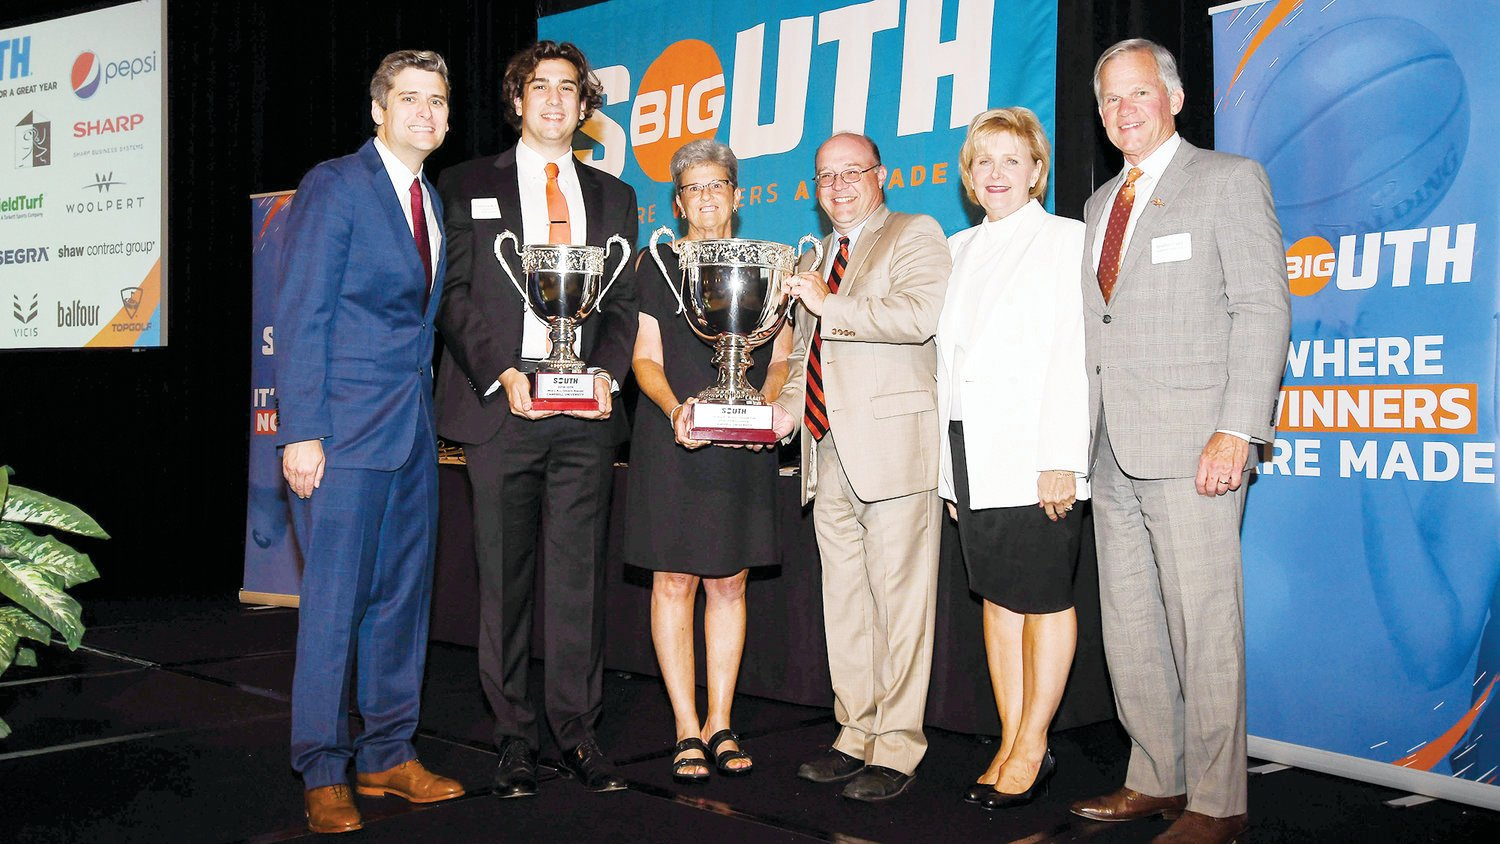 Campbell Director of Broadcasting Chris Hemeyer, Student-Athlete Advisory Committee President Cameron Kelshaw, Interim Athletic Director Wanda Watkins, Faculty Athletics Representative Dr. Sal Mercogliano, Kathy Creed, amd University President Dr. Brad Creed all stand together after Campbell was awarded the Big South Conference Sasser Cup.